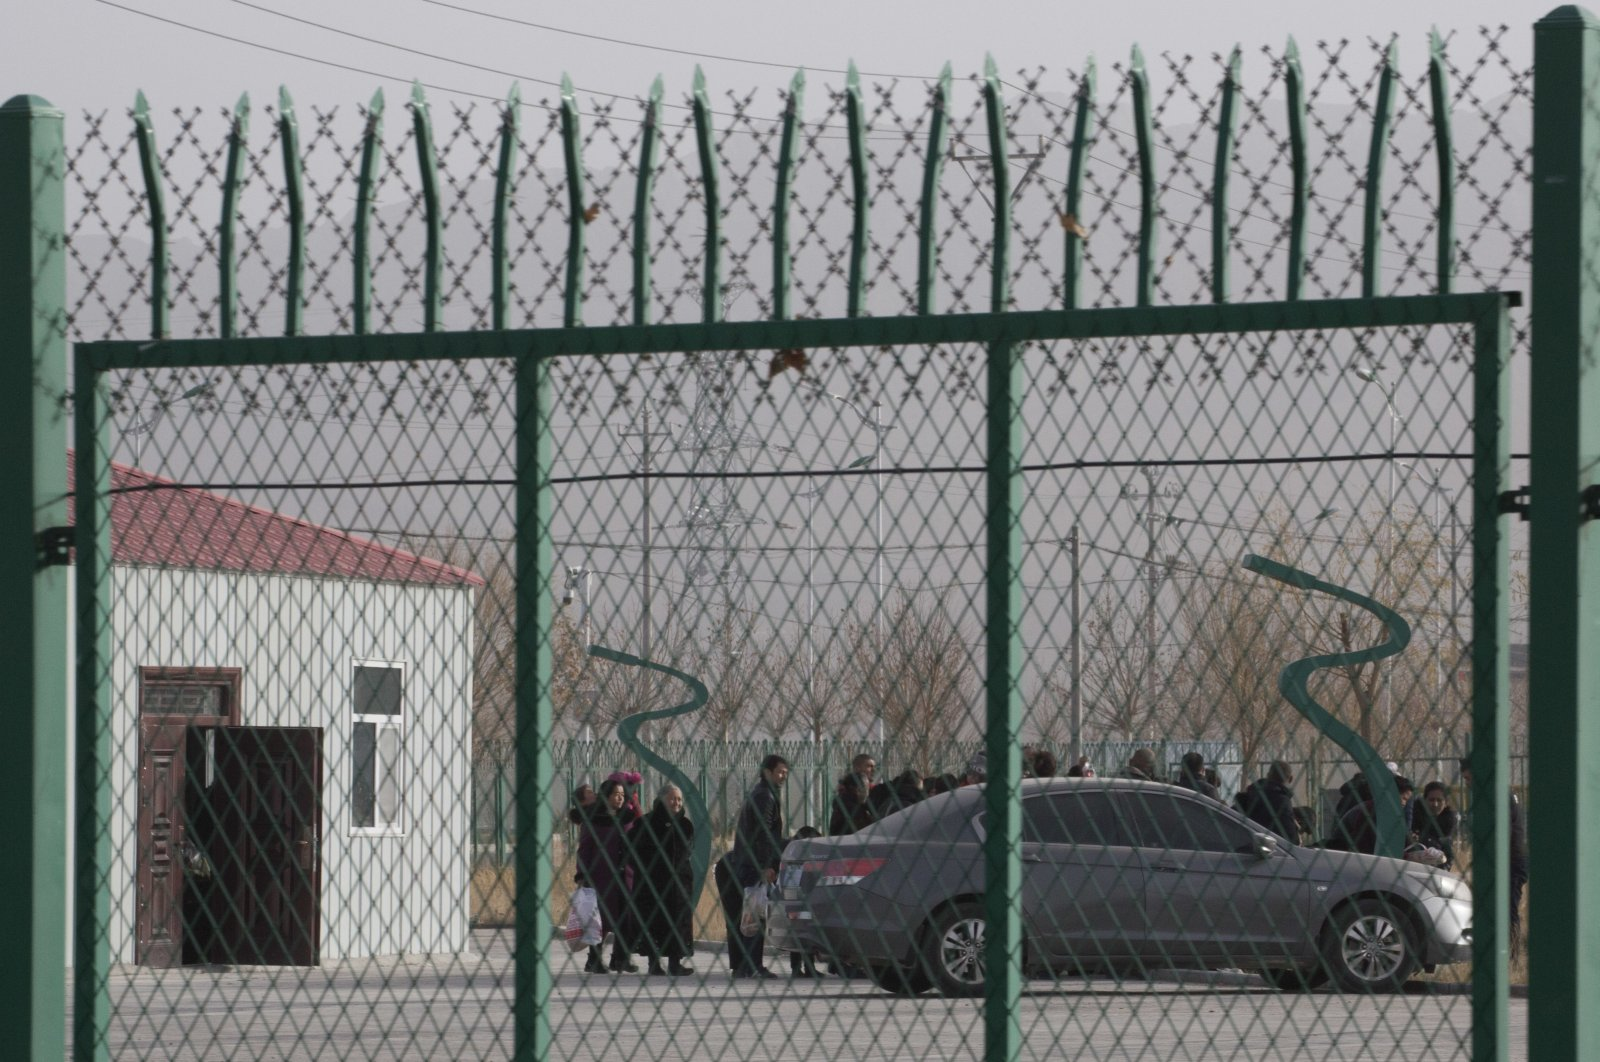 """People line up in an internment camp, called """"vocational skills education training service centers"""" by the Chinese government, in Artux, Xinjiang Uyghur Autonomous Region, western China, Dec. 3, 2018. (AP Photo)"""